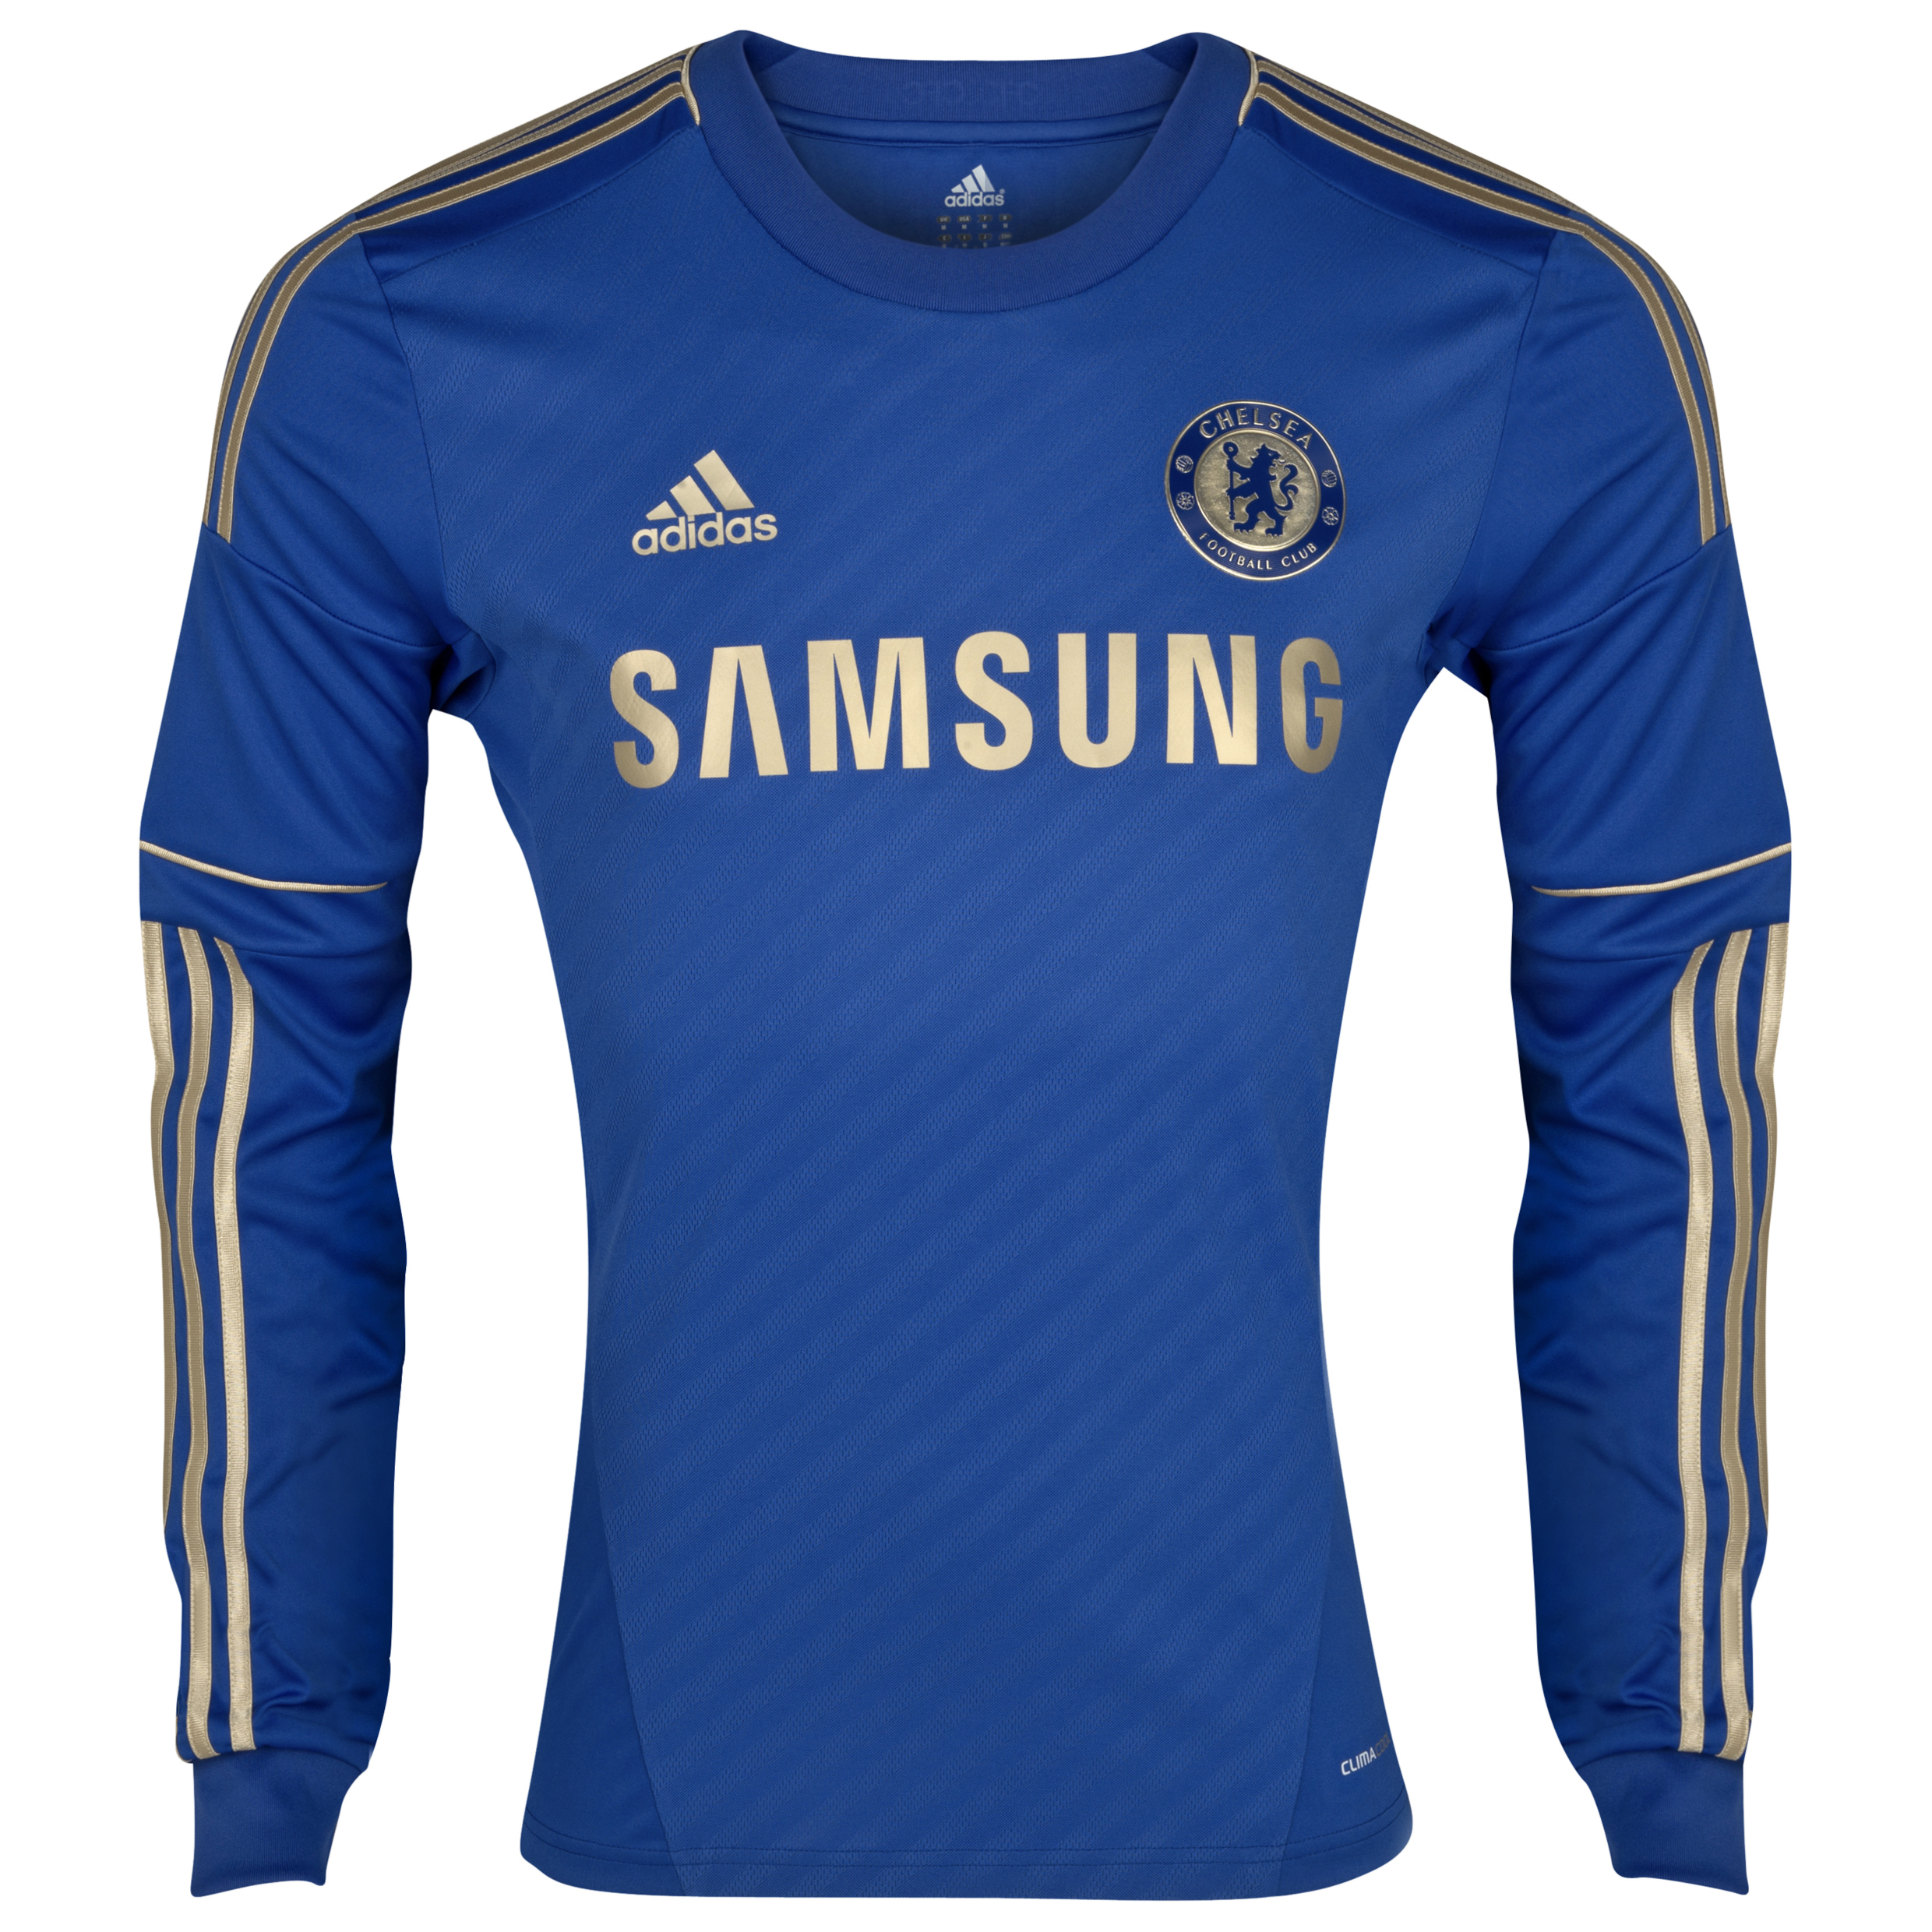 Chelsea Home Shirt 2012/13 Long Sleeved